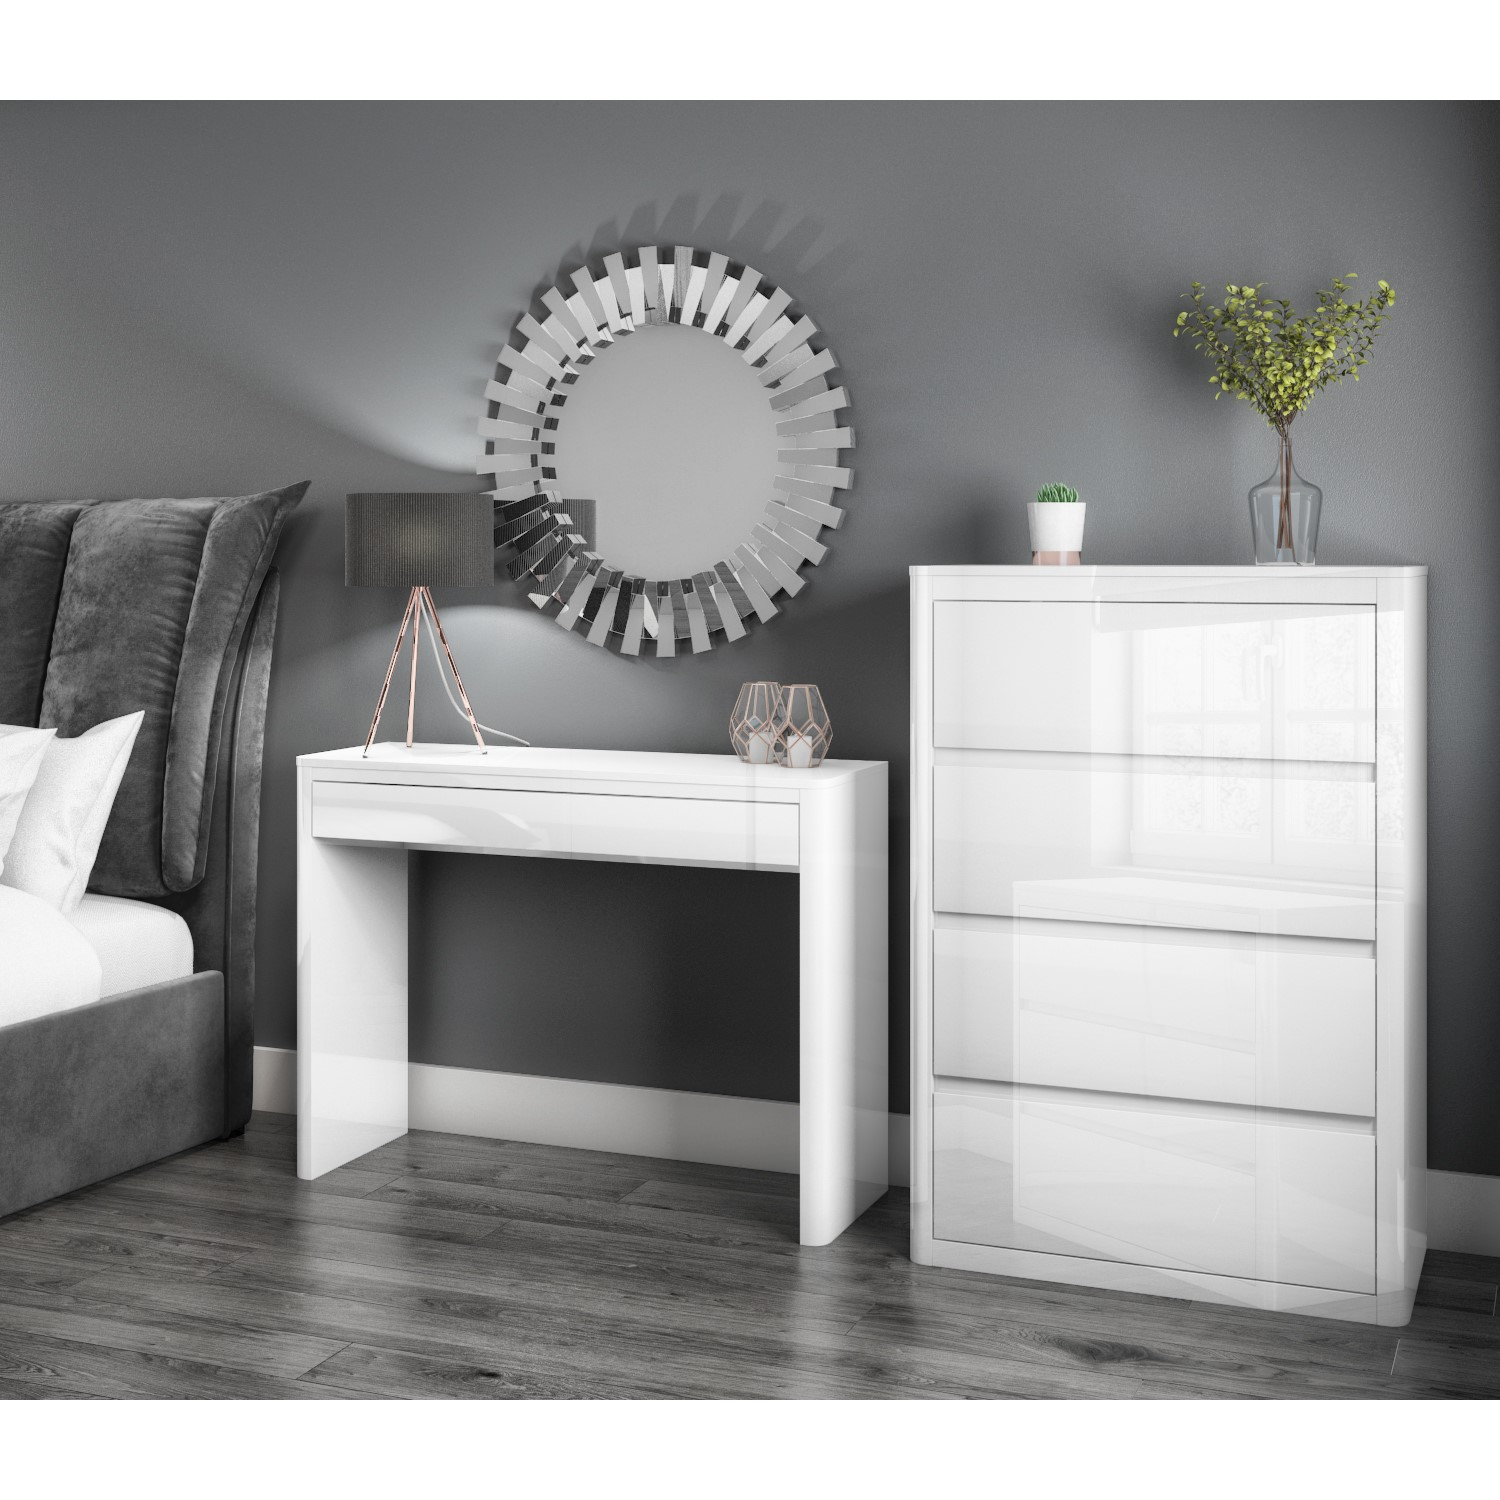 Delicieux Image Is Loading Modern White High Gloss Dressing Table Console Vanity